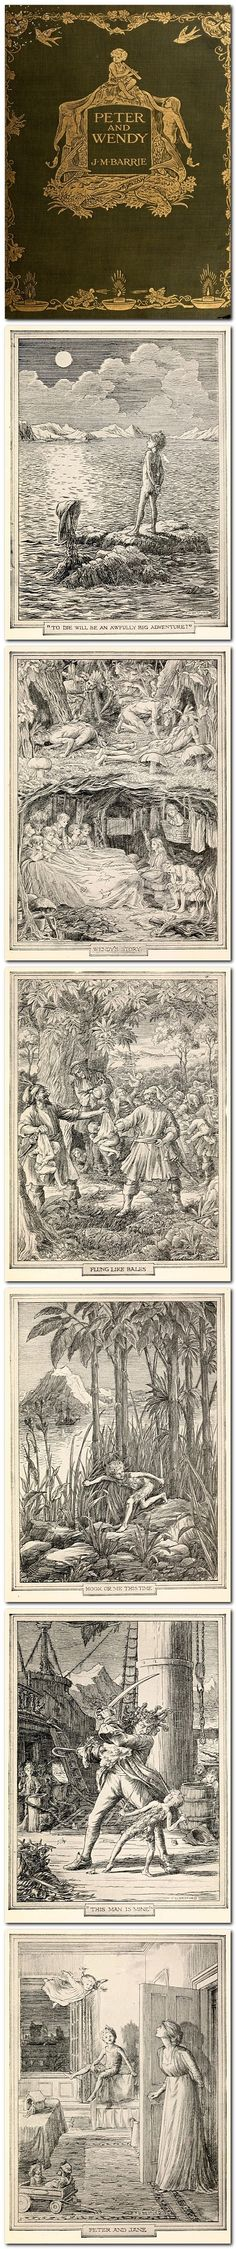 Peter and Wendy by J. M. Barrie, illustrated by F. D. Bedford, was published by Hodder & Stoughton (London), and Charles Scribner's Sons (New York), in 1911.